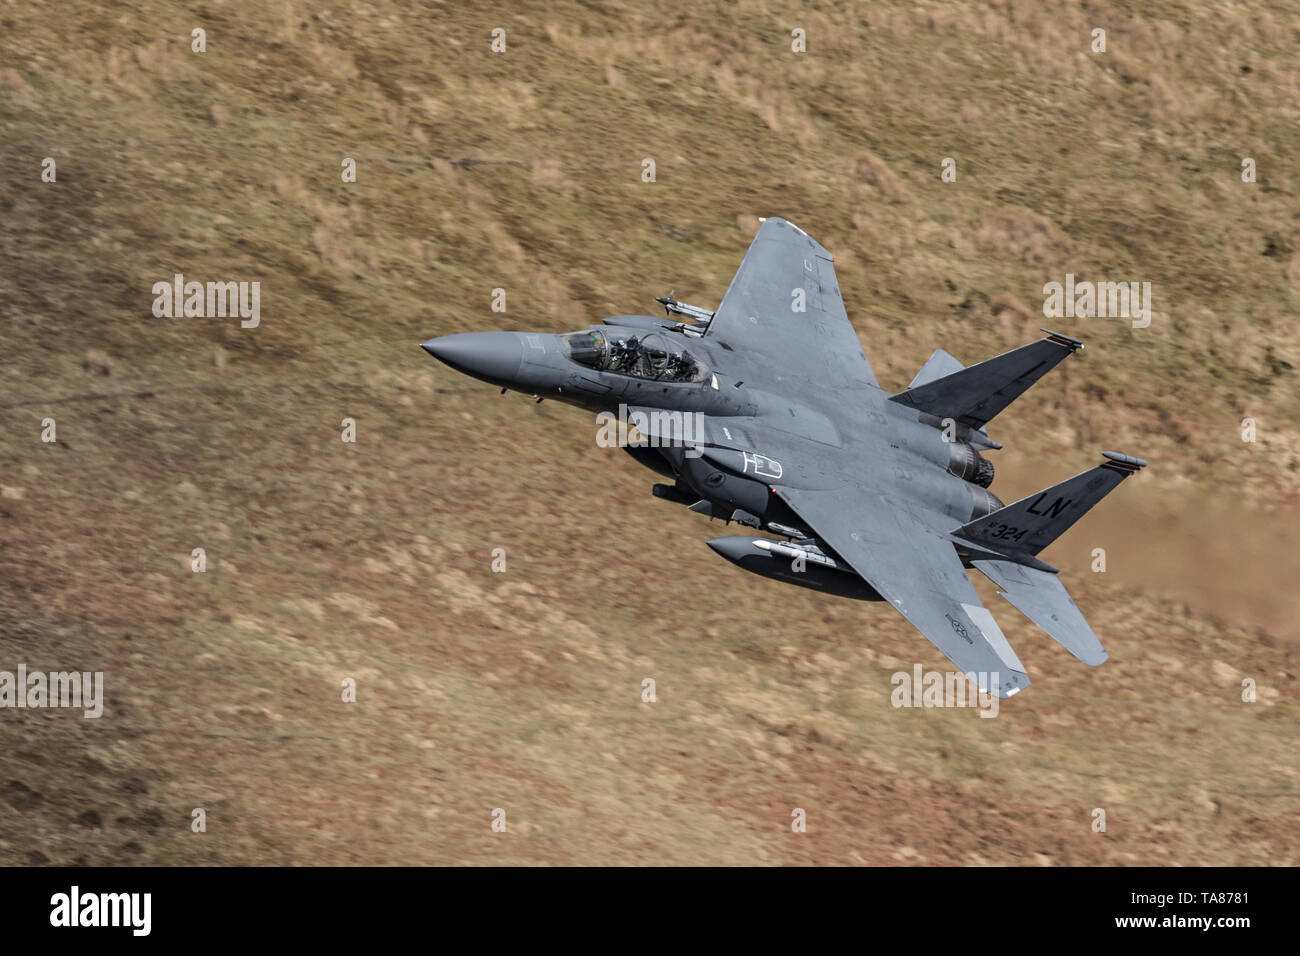 USAF F-15E Strike Eagle flying low level through the Mach Loop in Wales, UK Stock Photo